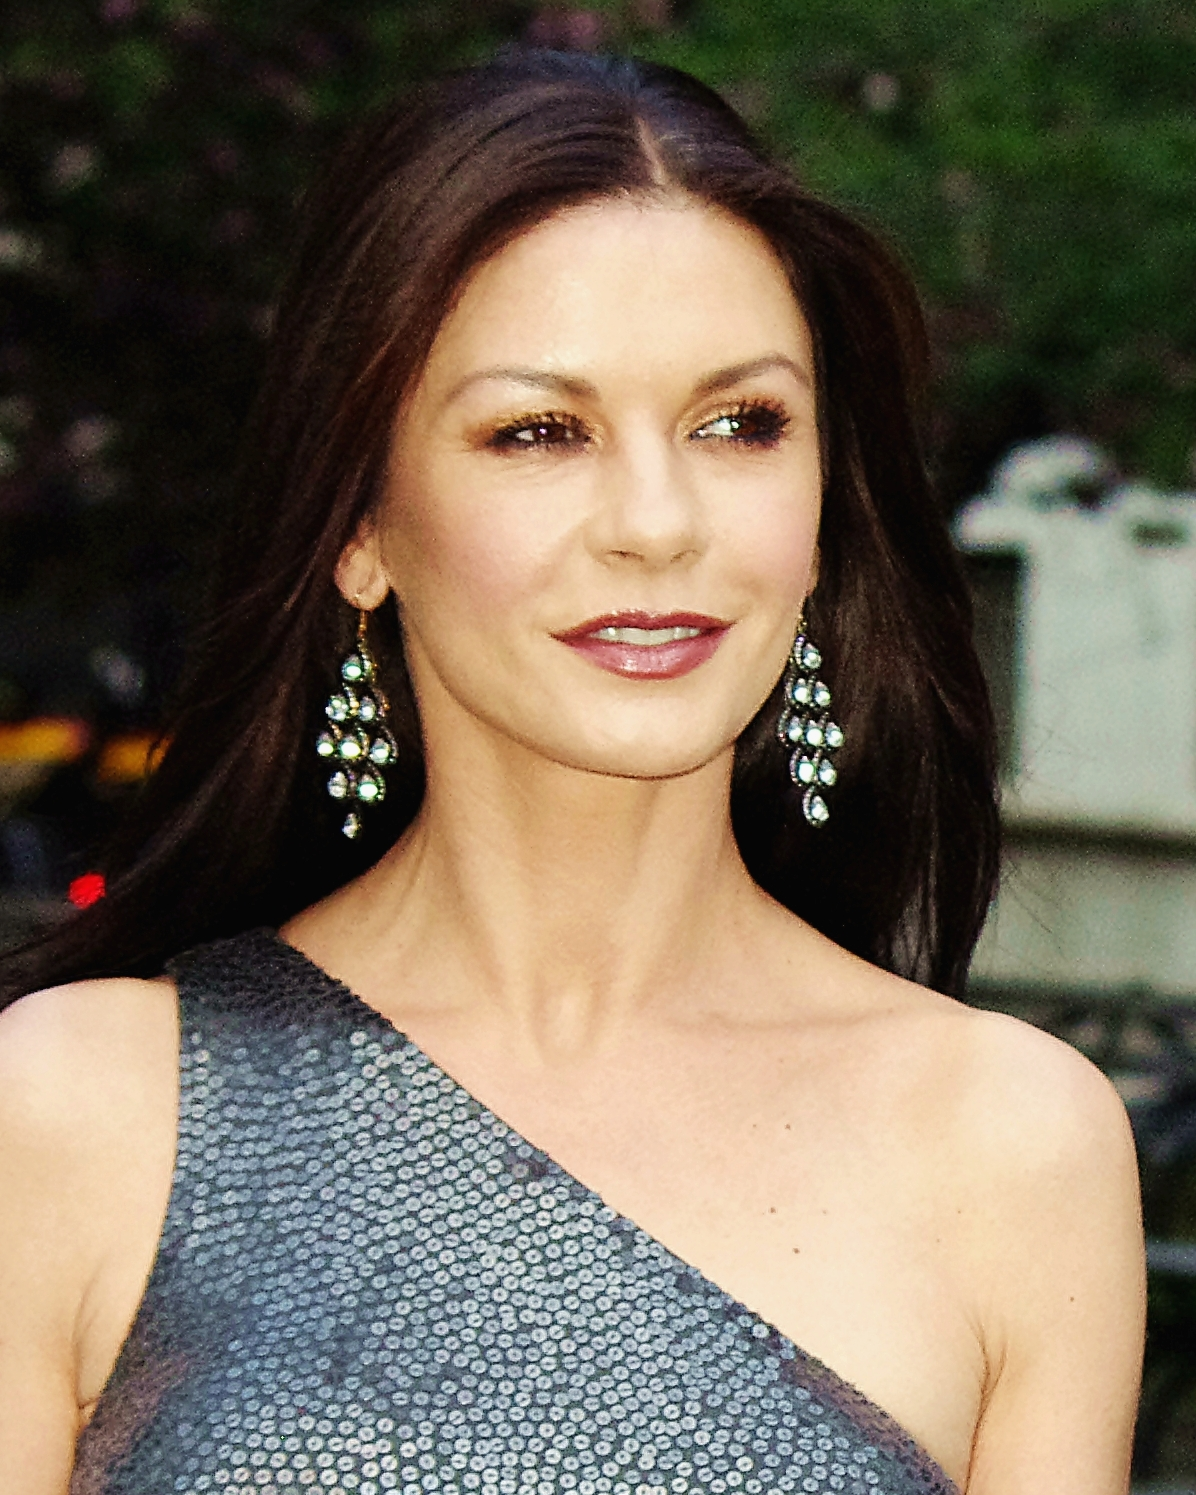 Catherine Zeta-Jones - Wikipedia, la enciclopedia libre Catherine Zeta Jones